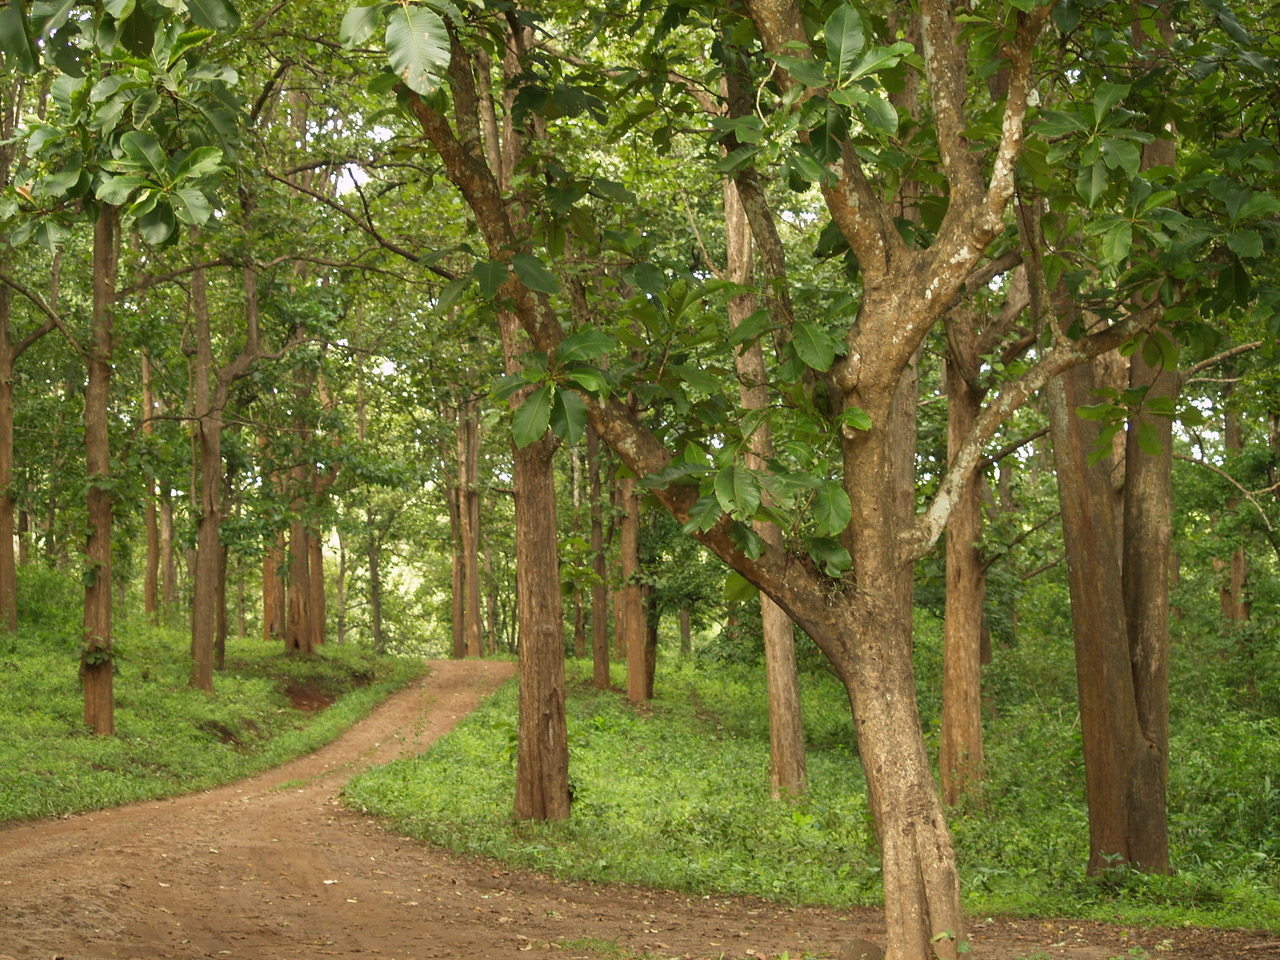 India's new forest policy draft draws criticism for emphasis on